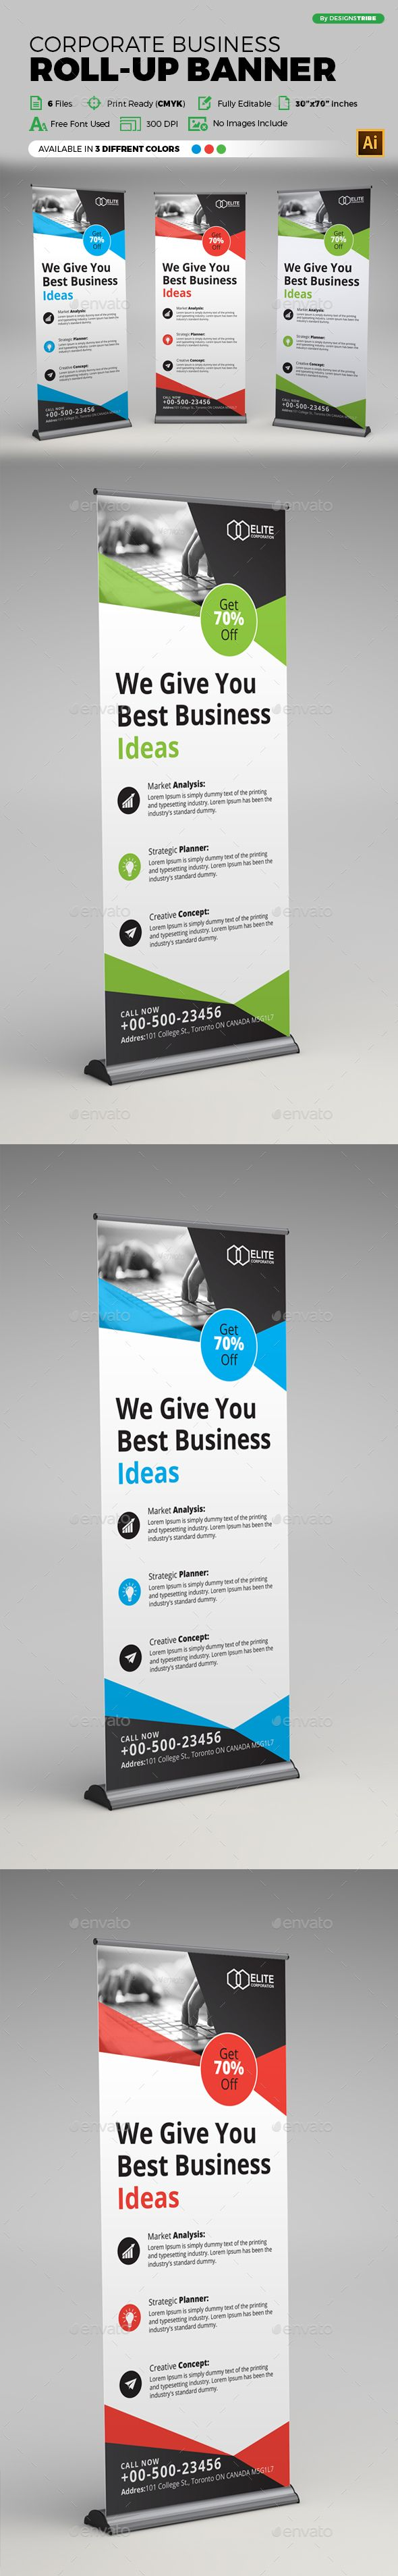 Retractable Banner Design Templates